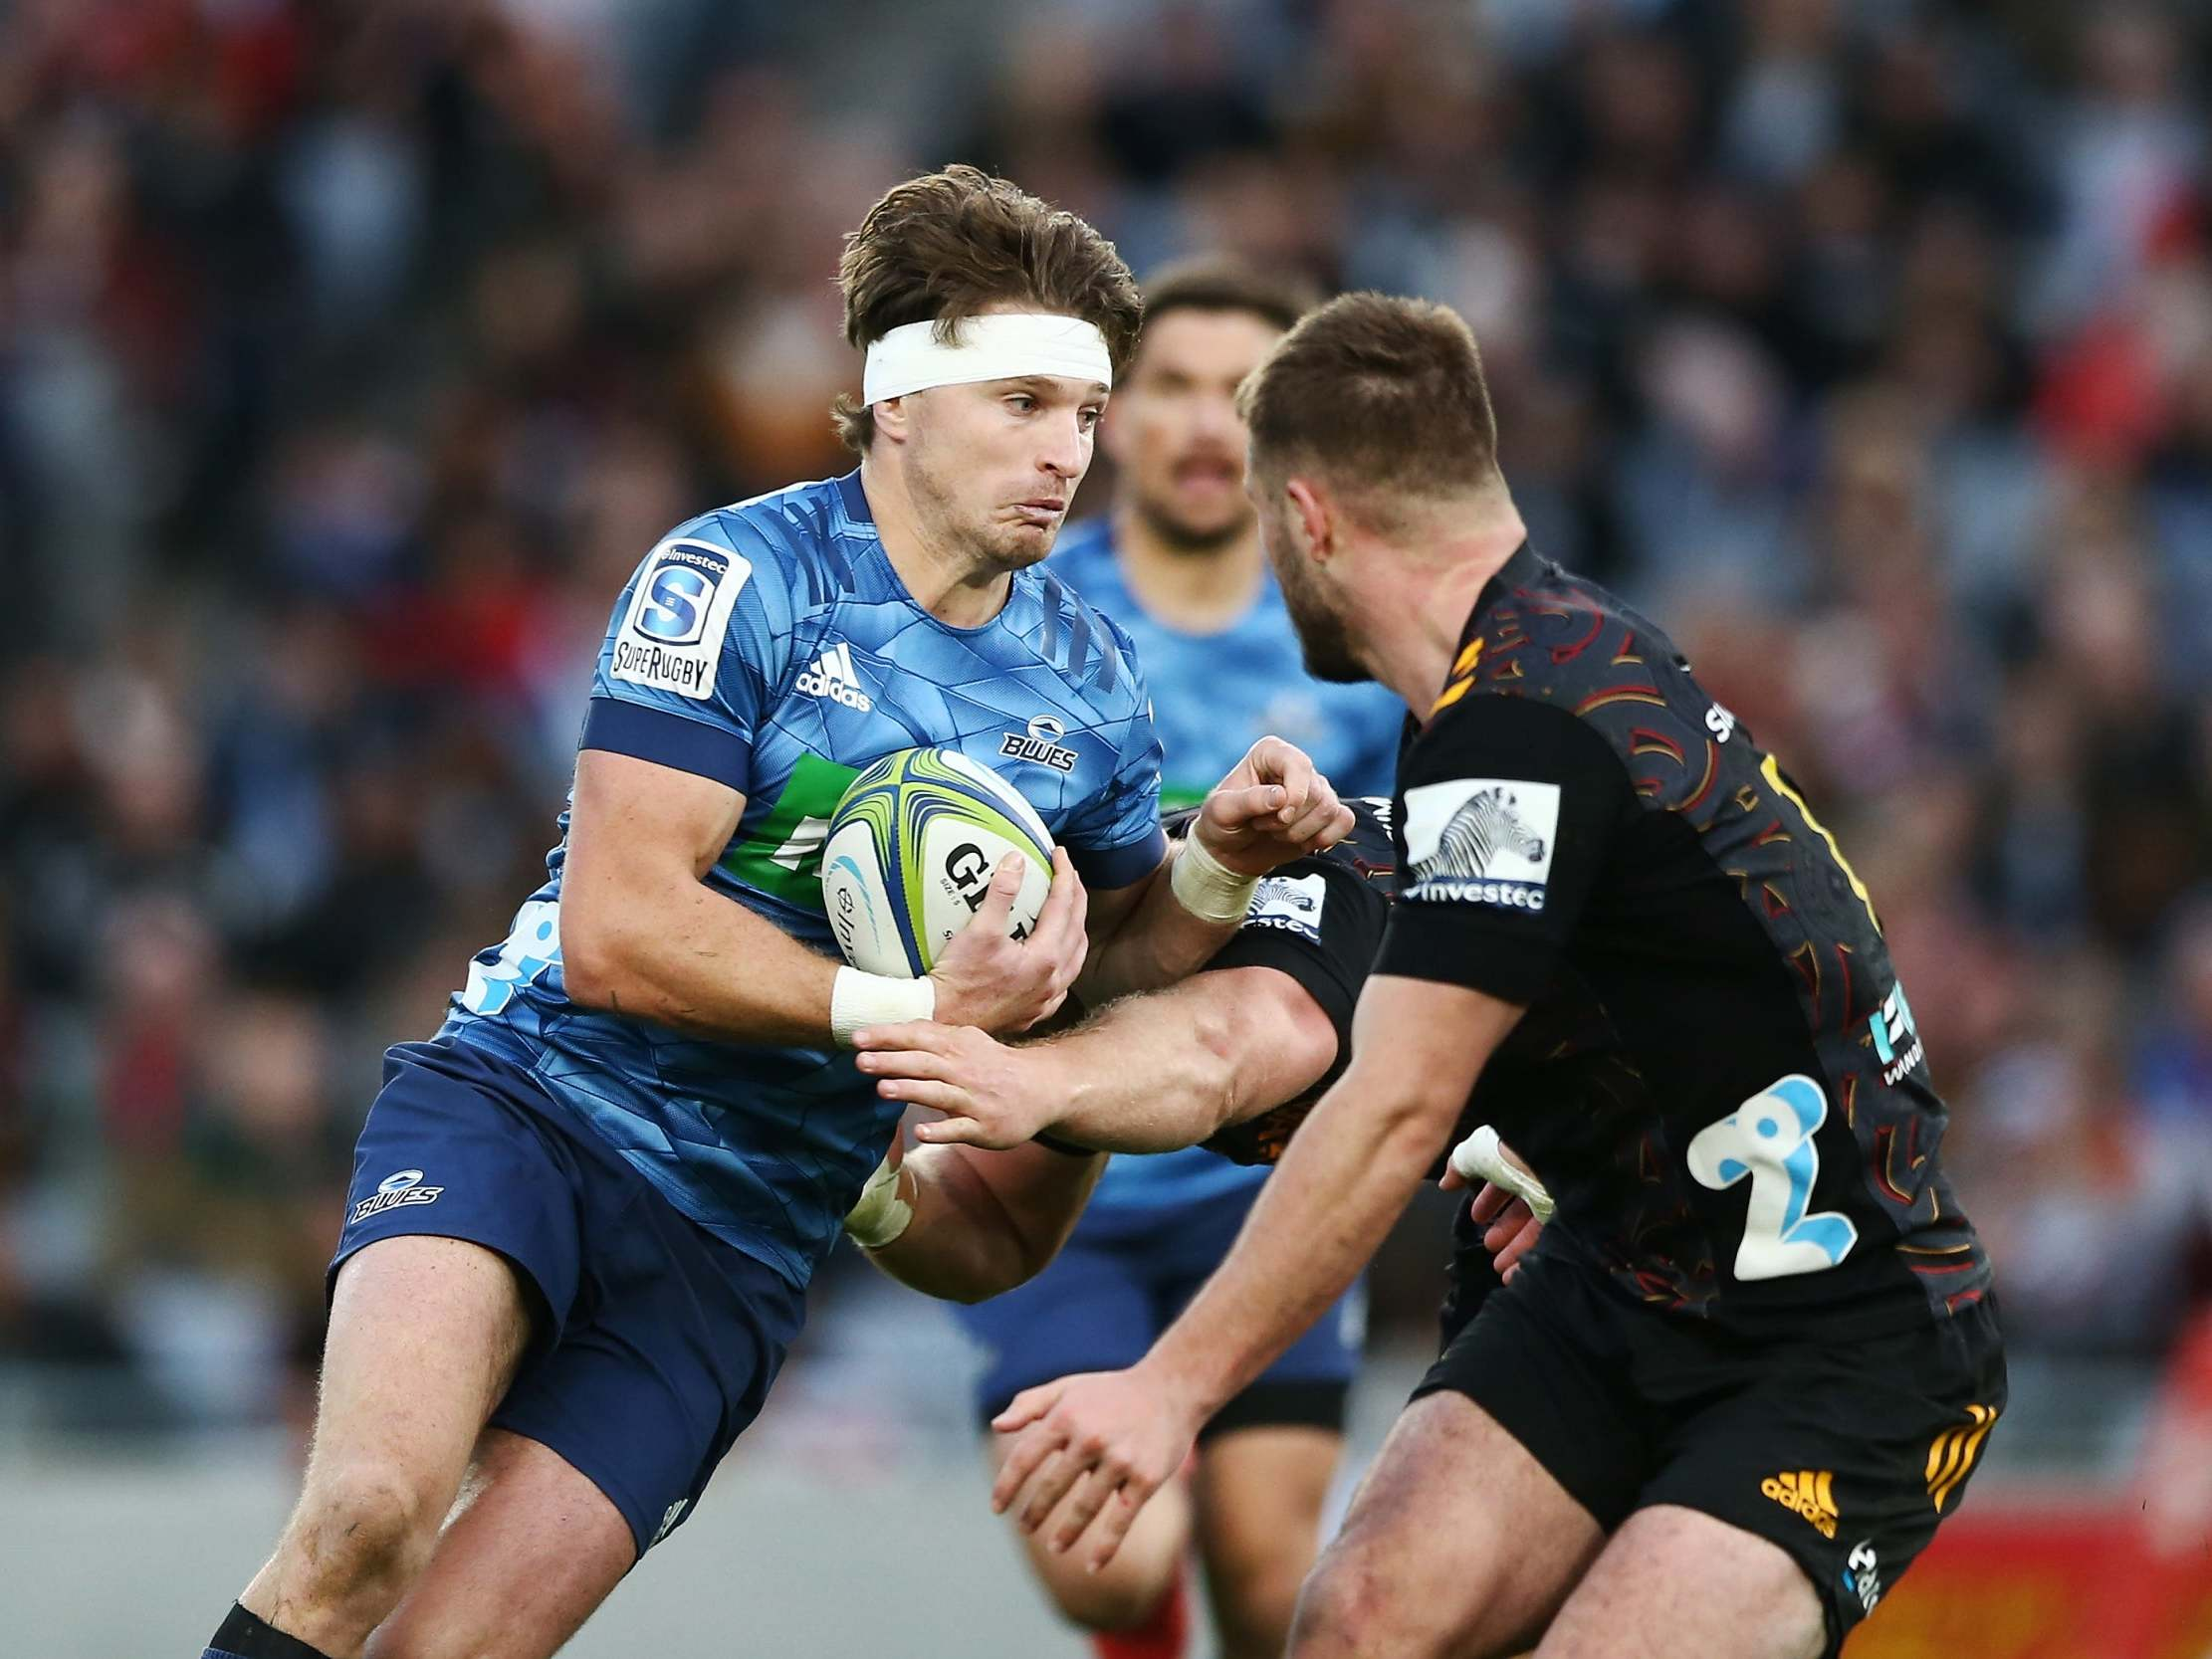 Super Rugby Aotearoa Finale Under Threat As New Zealand Increases Lockdown Measures The Independent The Independent